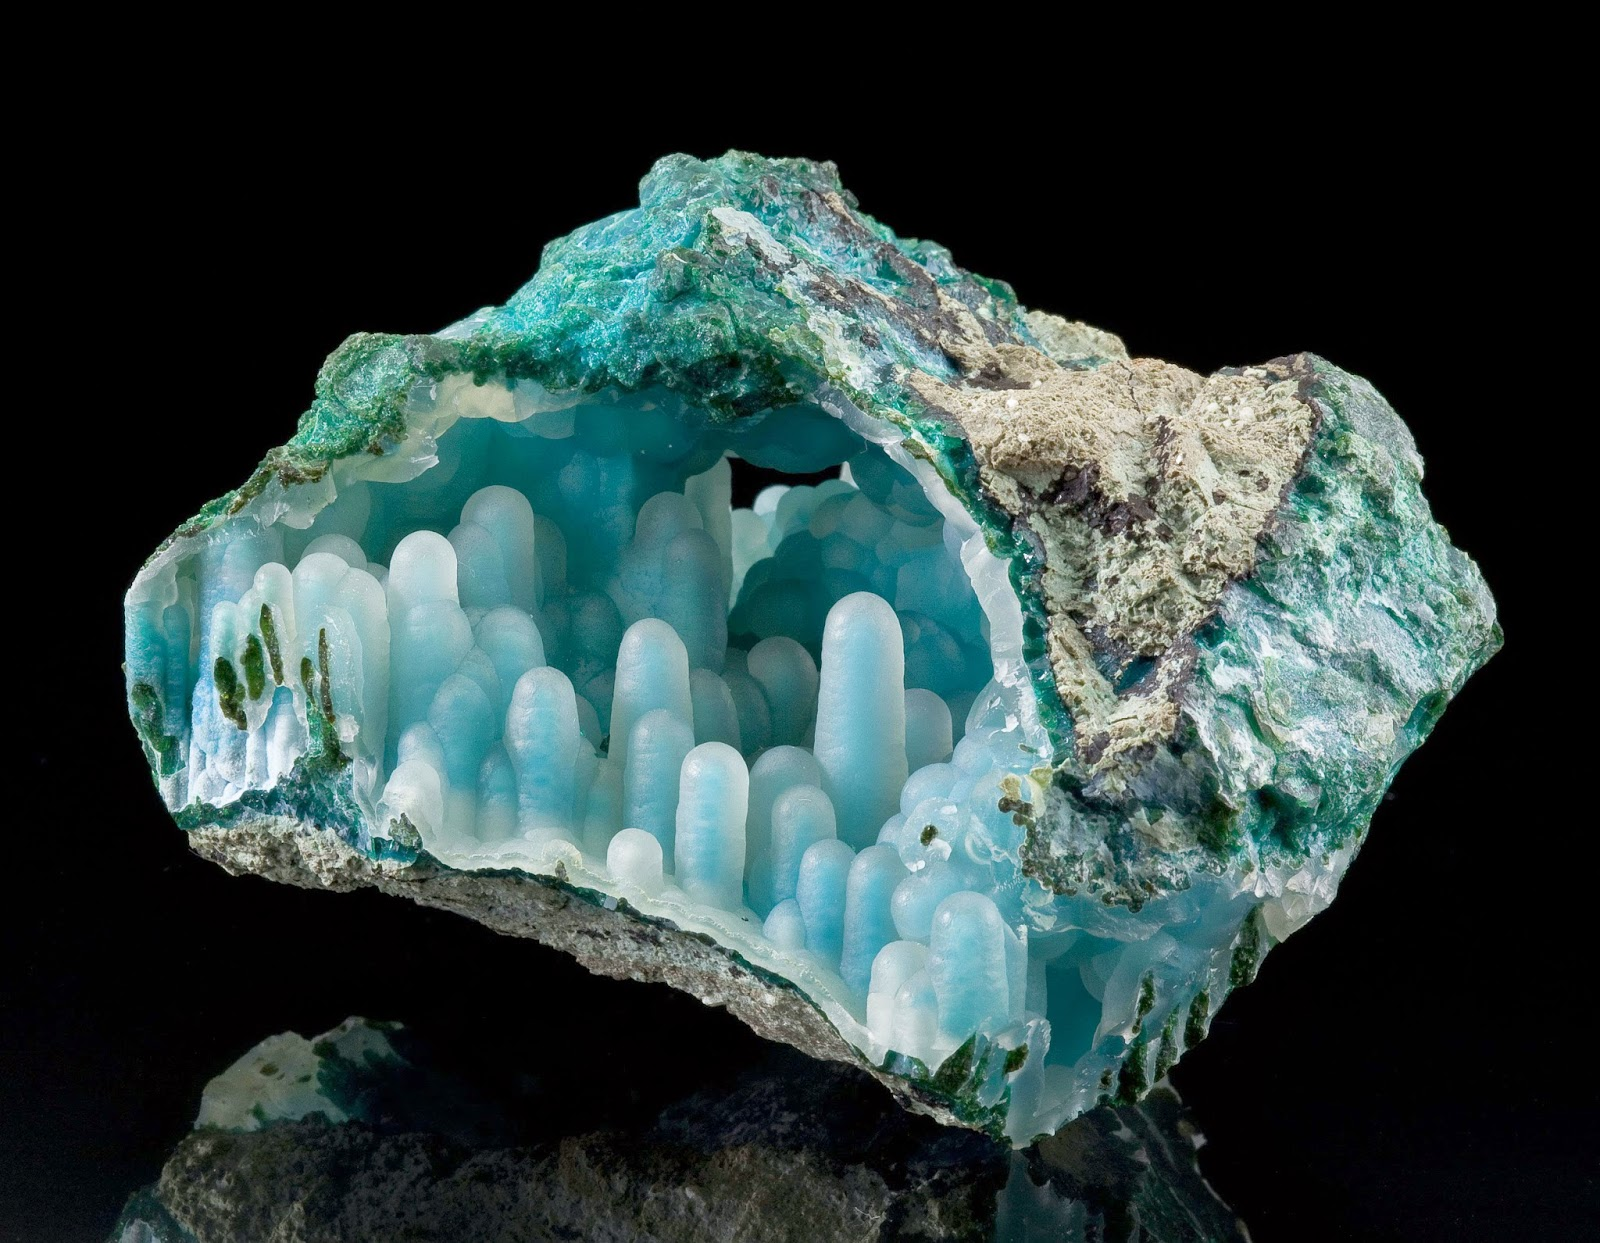 A  geode  pocket of chalcedony on chrysocolla stalactites. Classic example of the quartz-covered chrysocolla stalactites ( stalactitic  aggregate) From Inspiration Mine, AZ